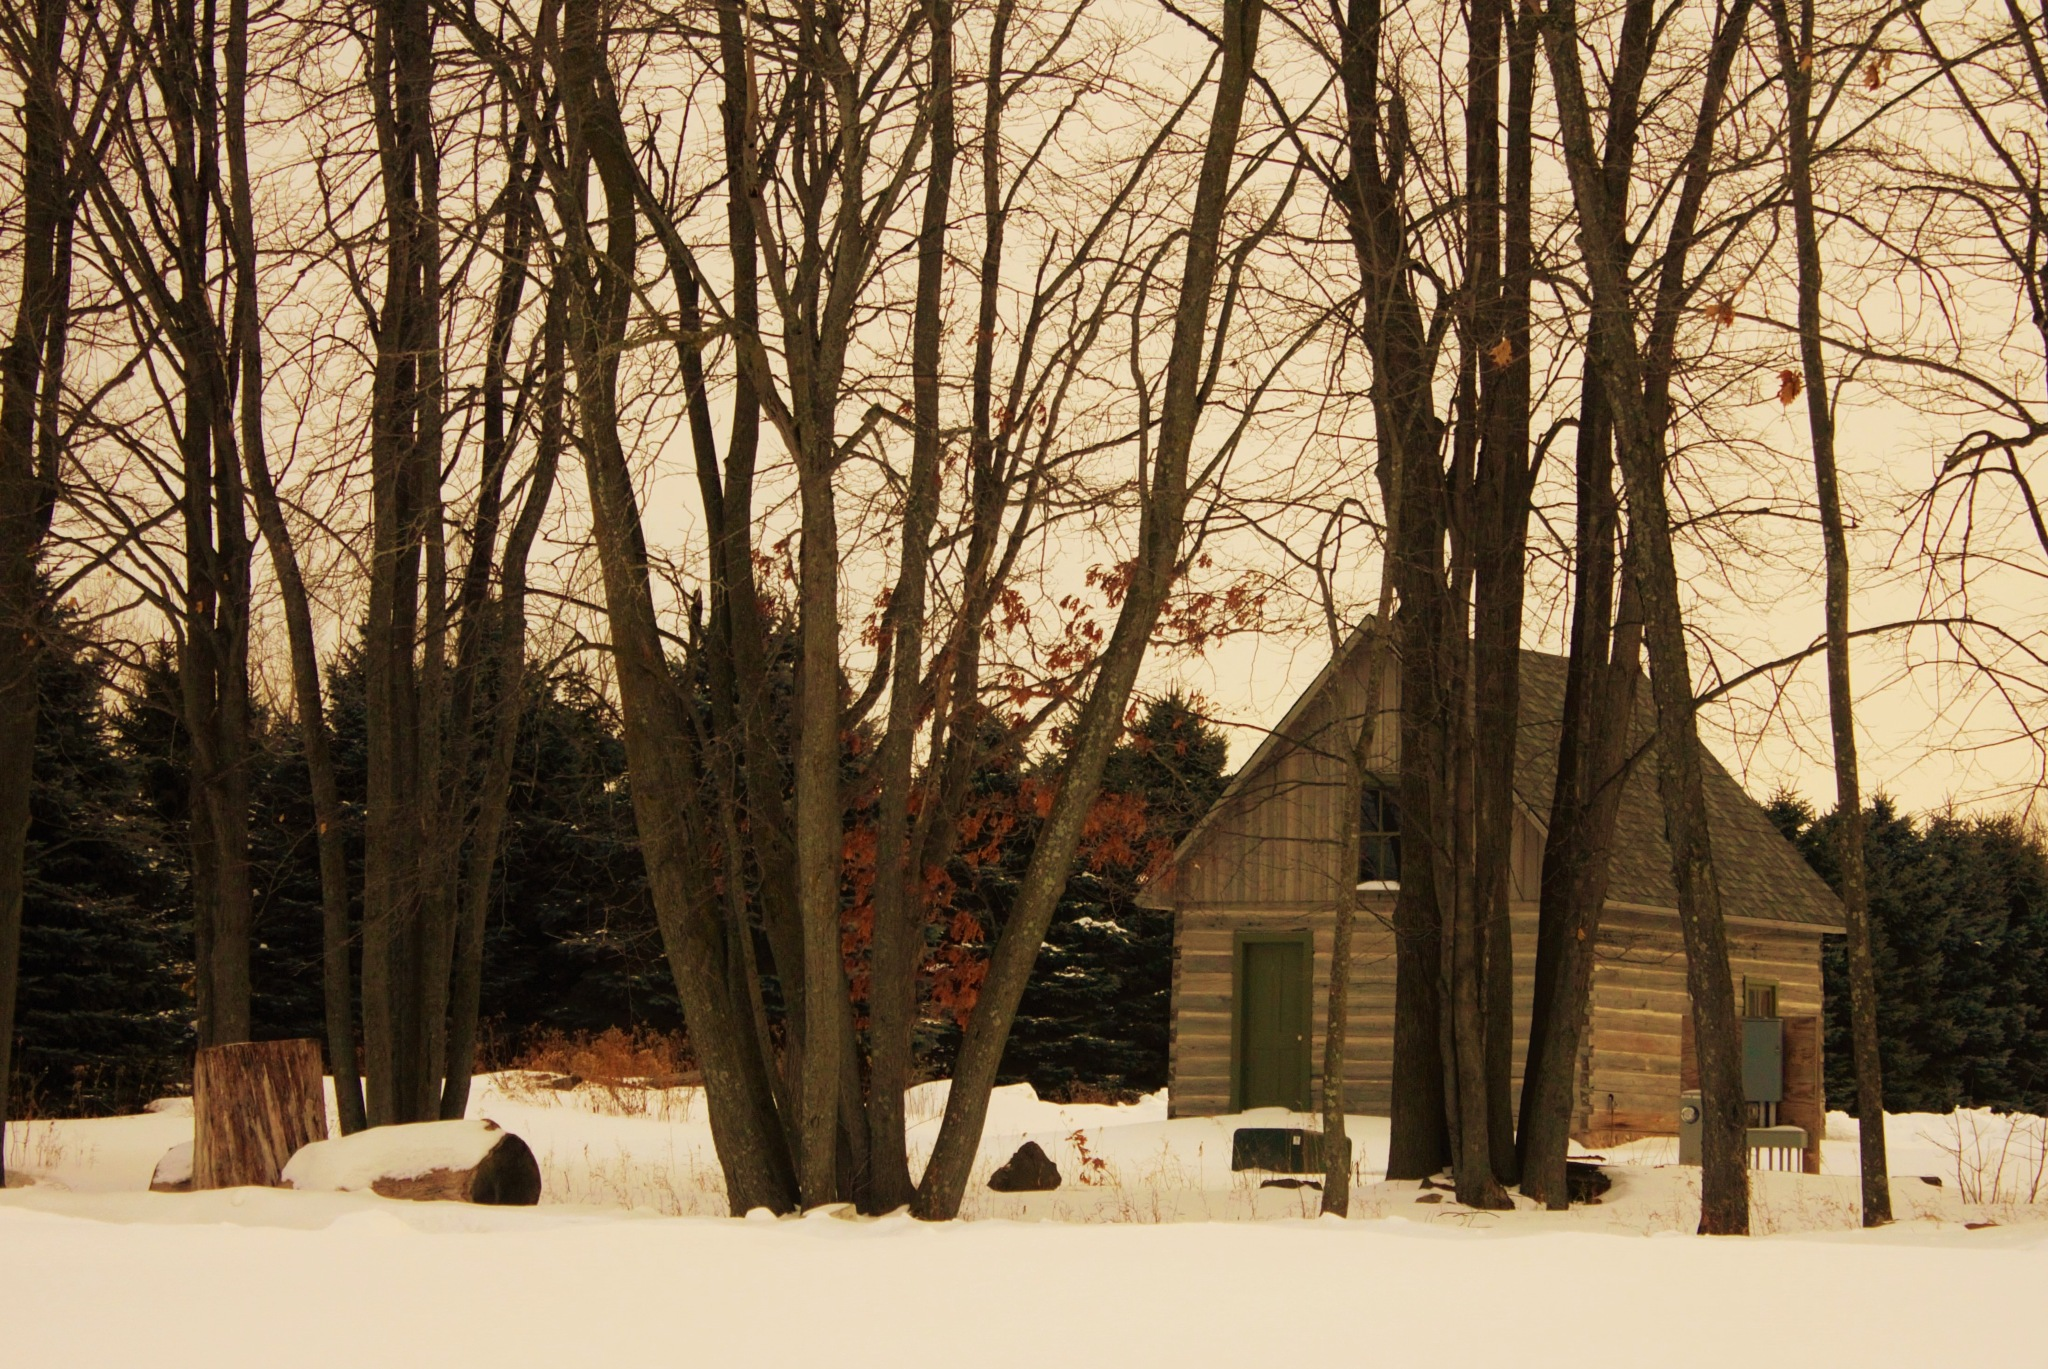 Cottage in the snowy forest by autumn.acres.1